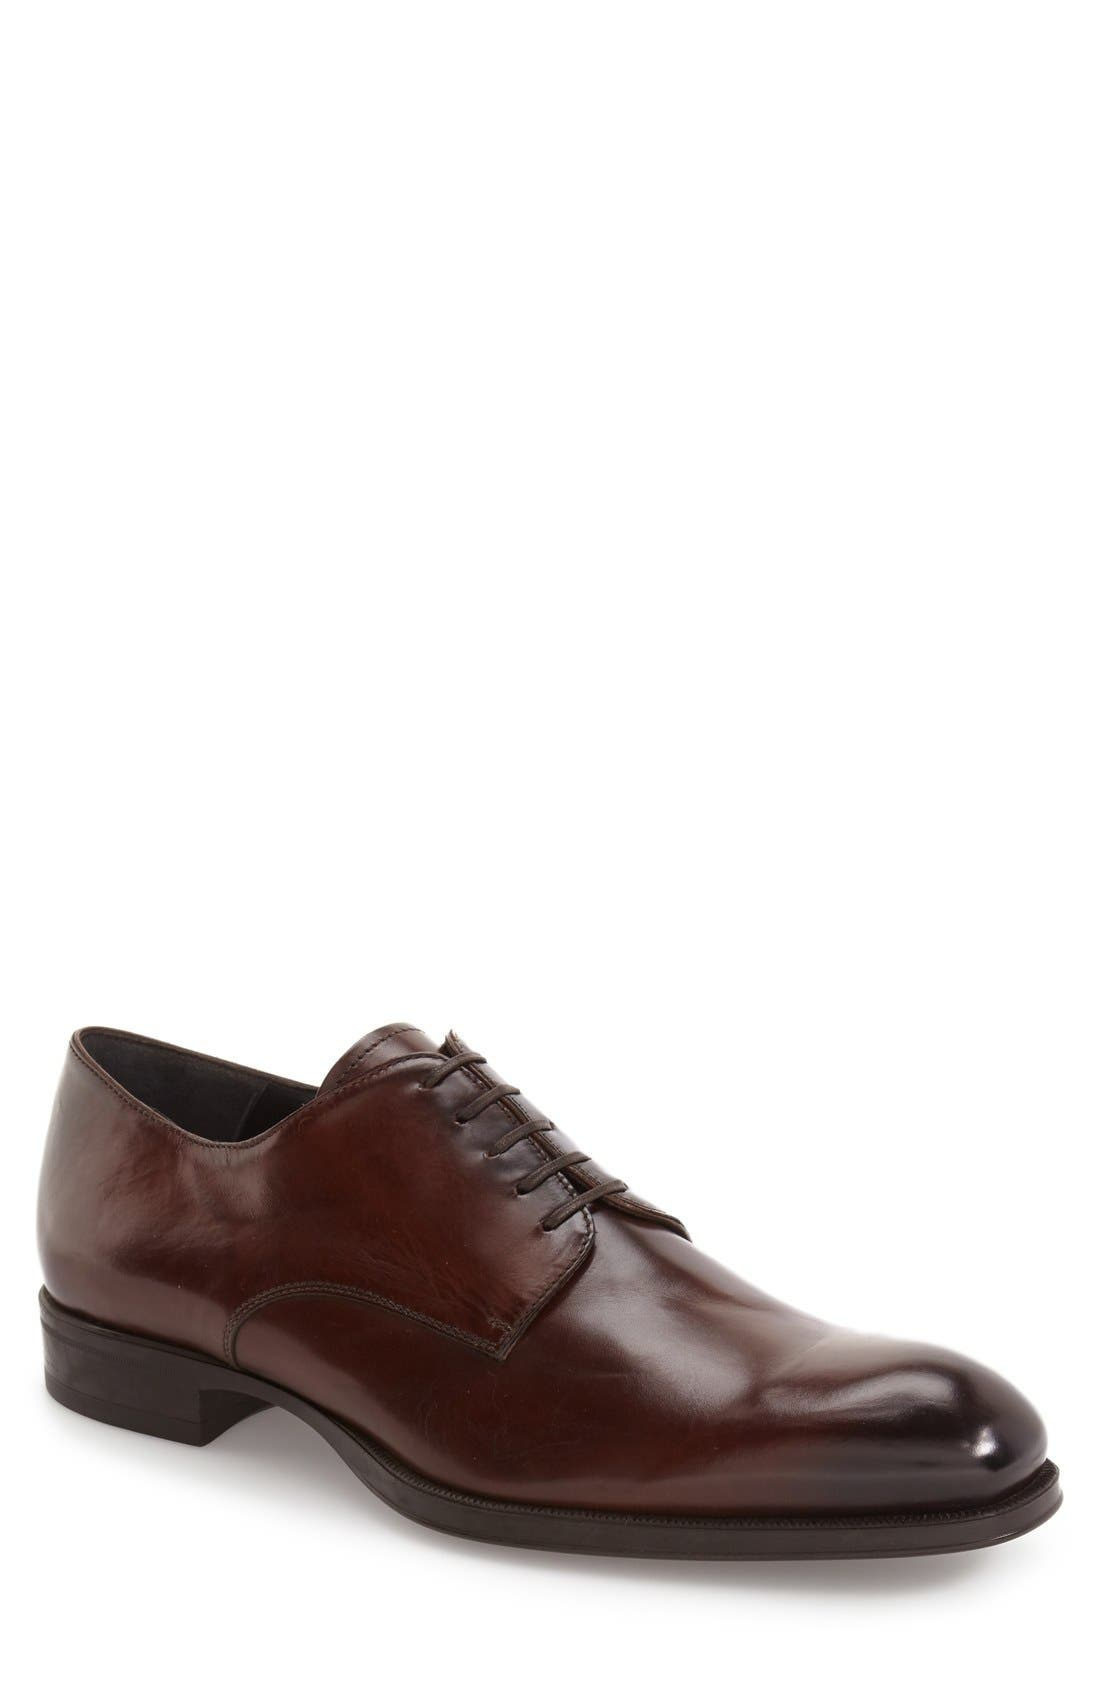 Alternate Image 1 Selected - To Boot New York 'Buchanan' Plain Toe Derby (Men)